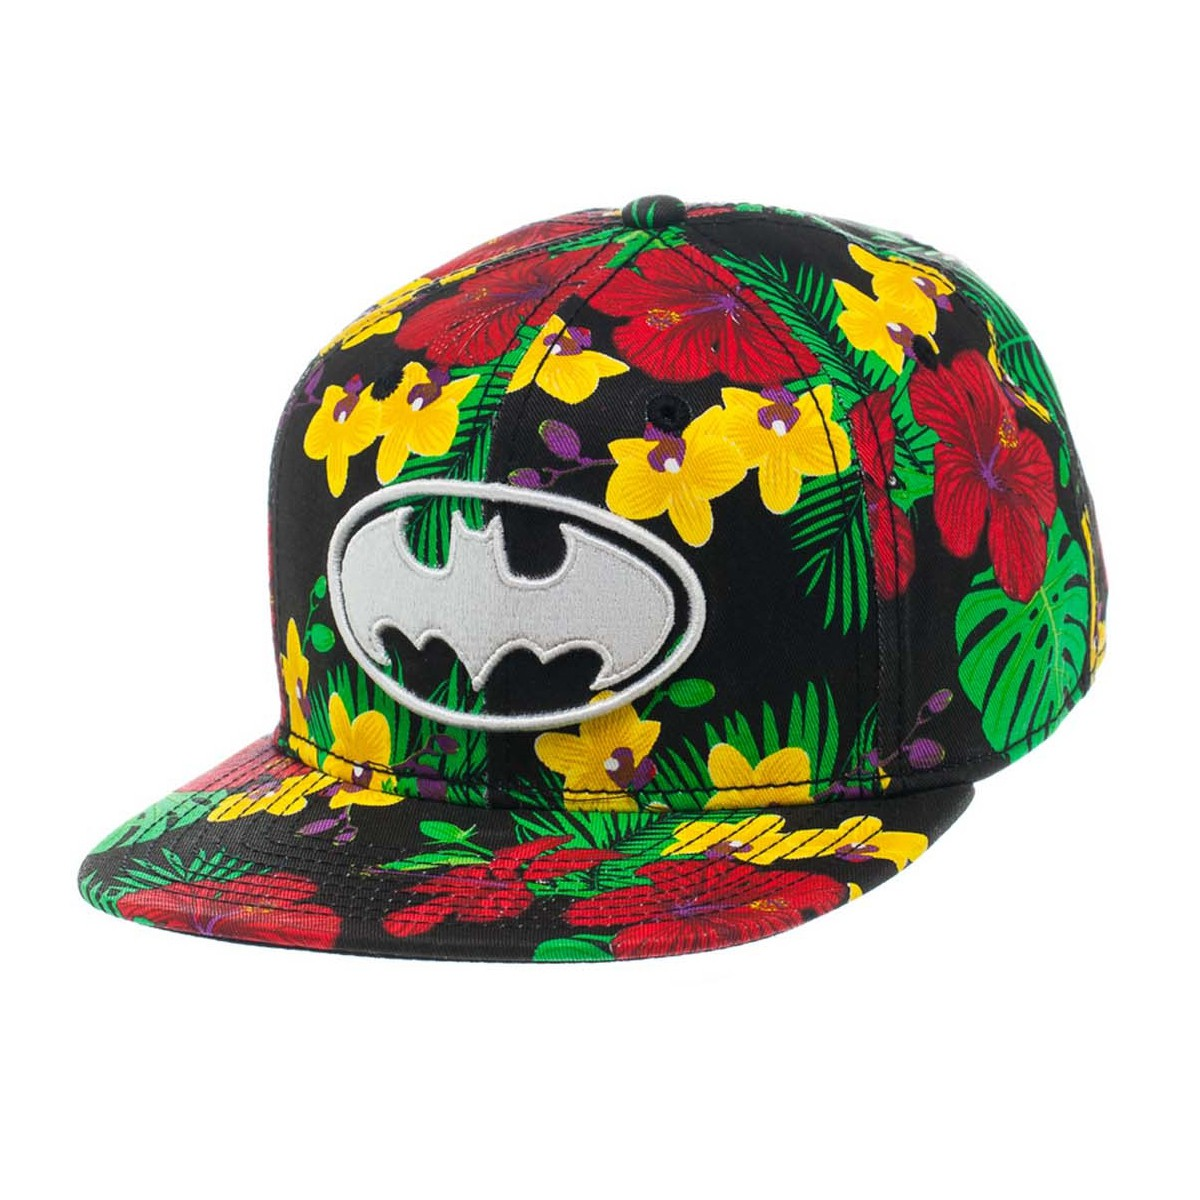 122dfe7af97 Batman - Flower Print Snapback - Darkside Central